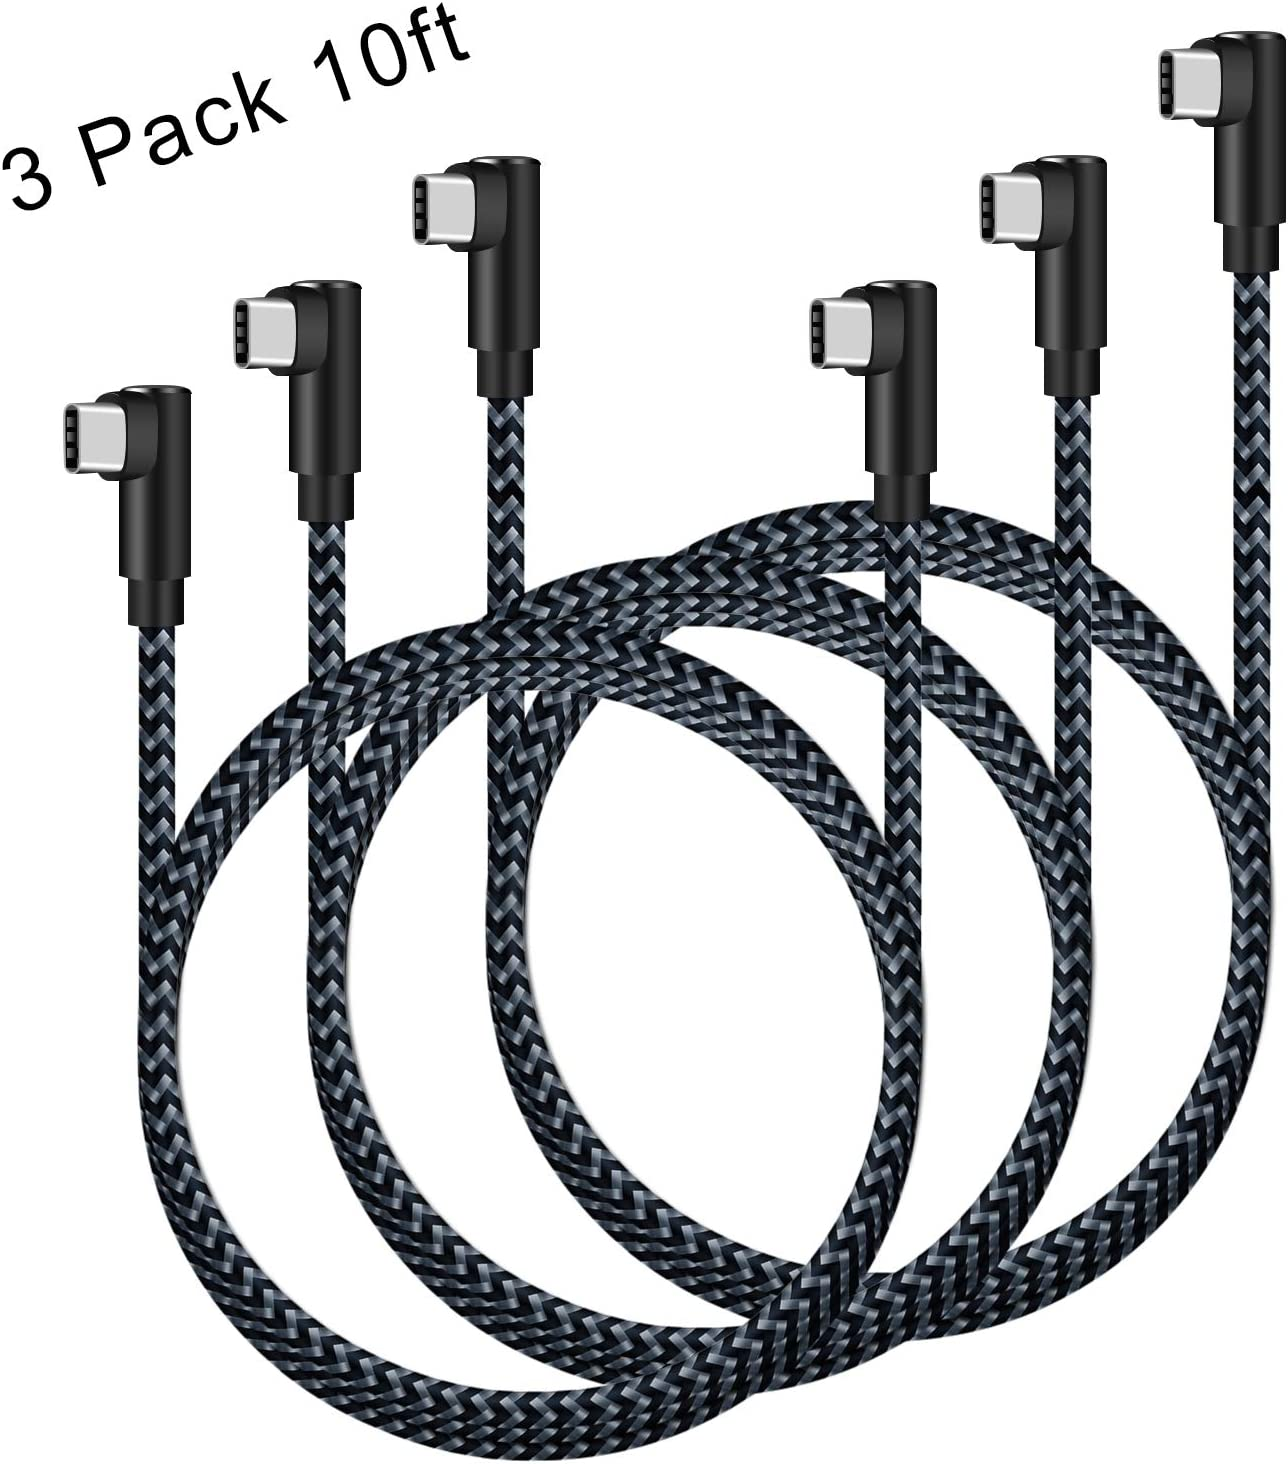 3 Pack 10ft USB C to USB C Cable Grey,10feet Extra Long USB C to USB C Right Angle 90 Degree Nylon Braided Charging Cord Compatible with Google Pixel 2//3//3a//2 XL//3 XL//3a XL,Nexus 6P